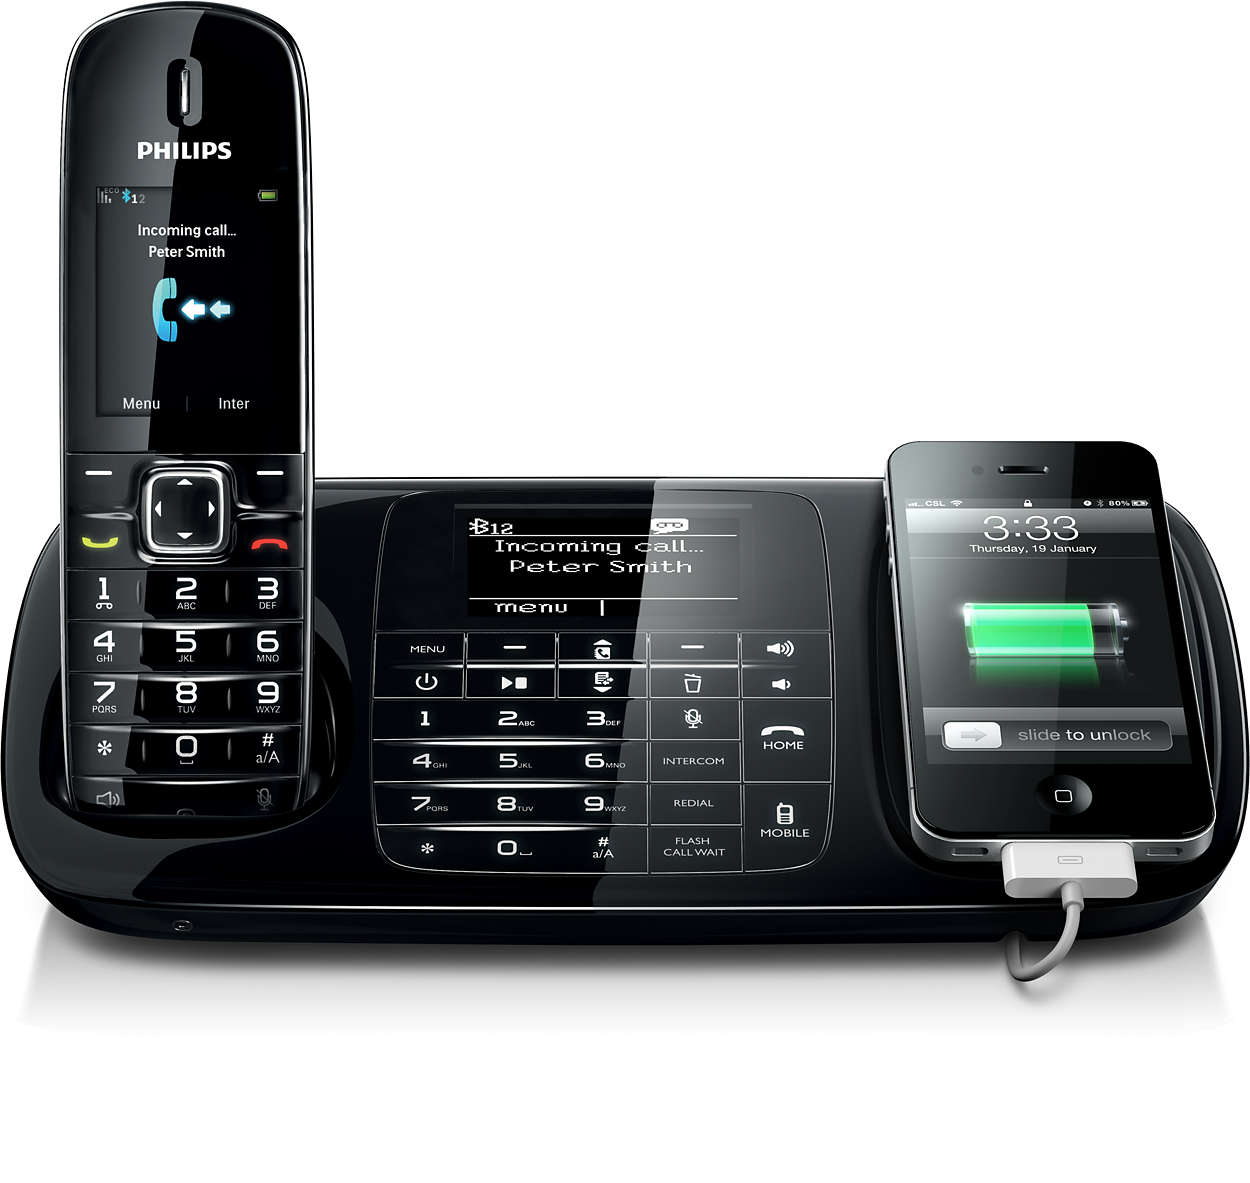 All calls, landline and mobile, on one phone